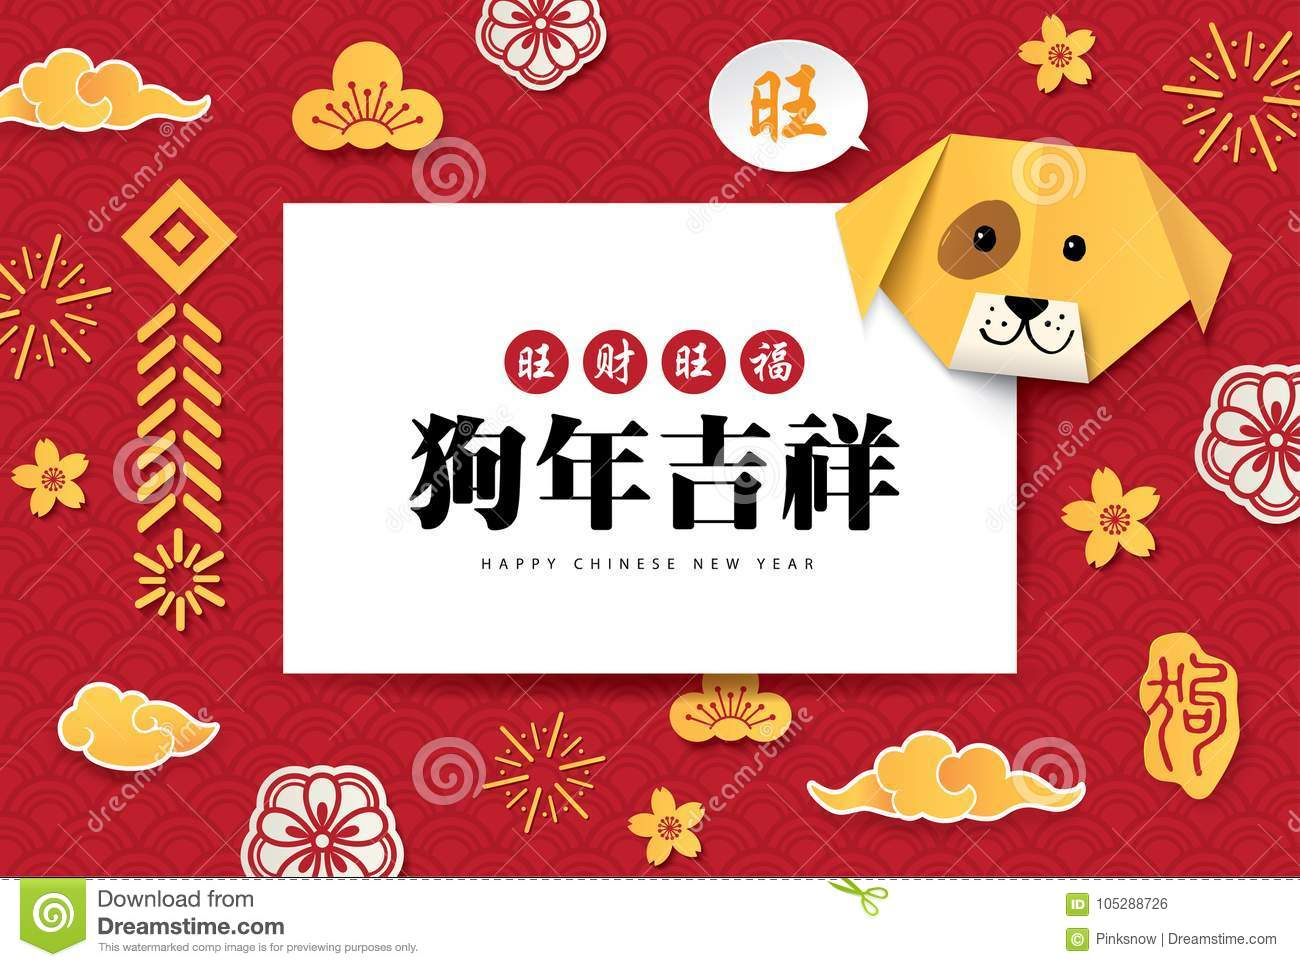 2018 chinese new year greeting card design with origami dog